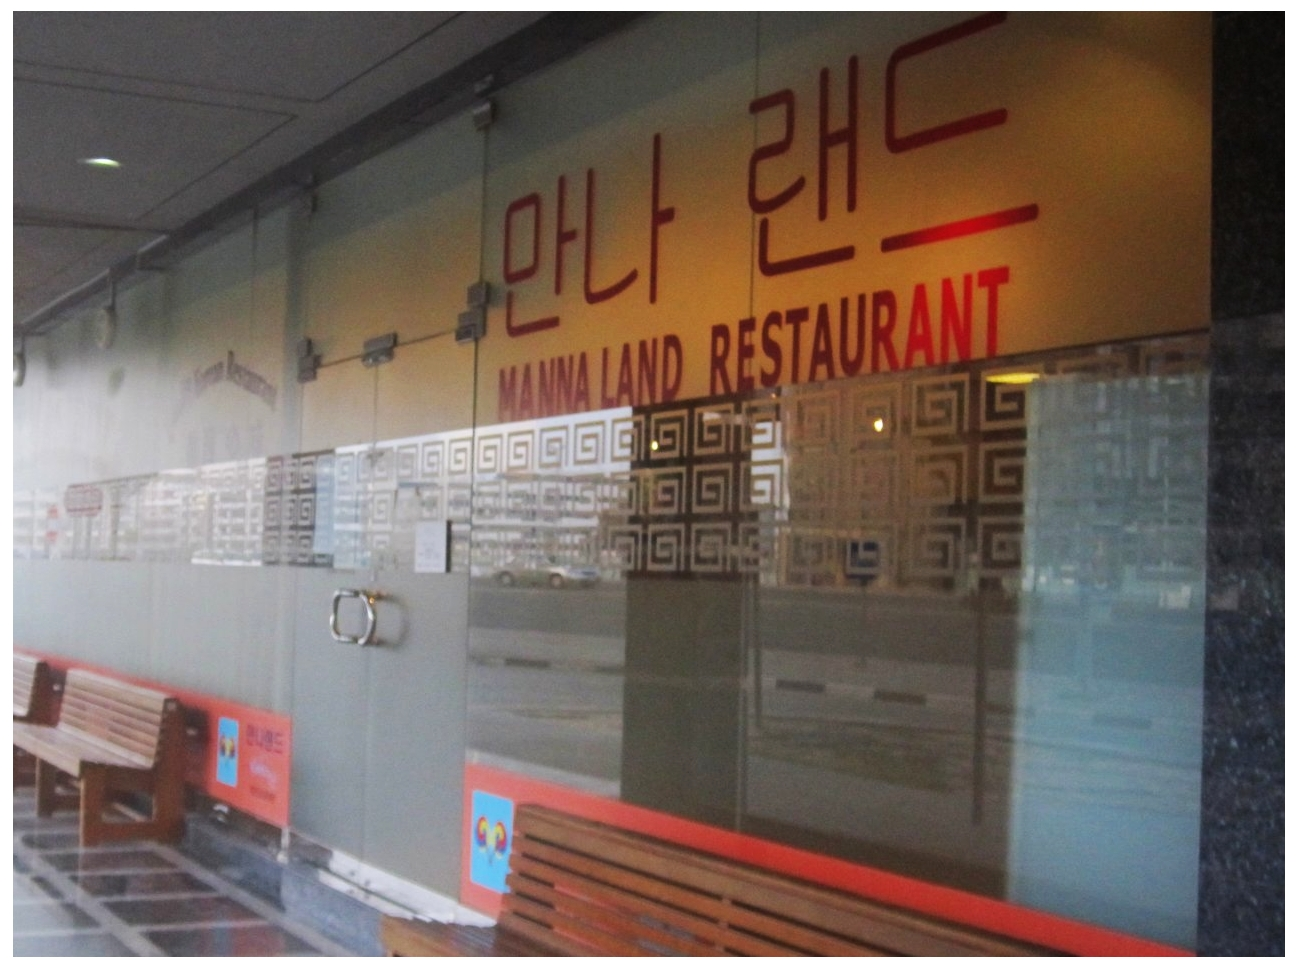 Mannaland Korean Restaurant Dubai Overview